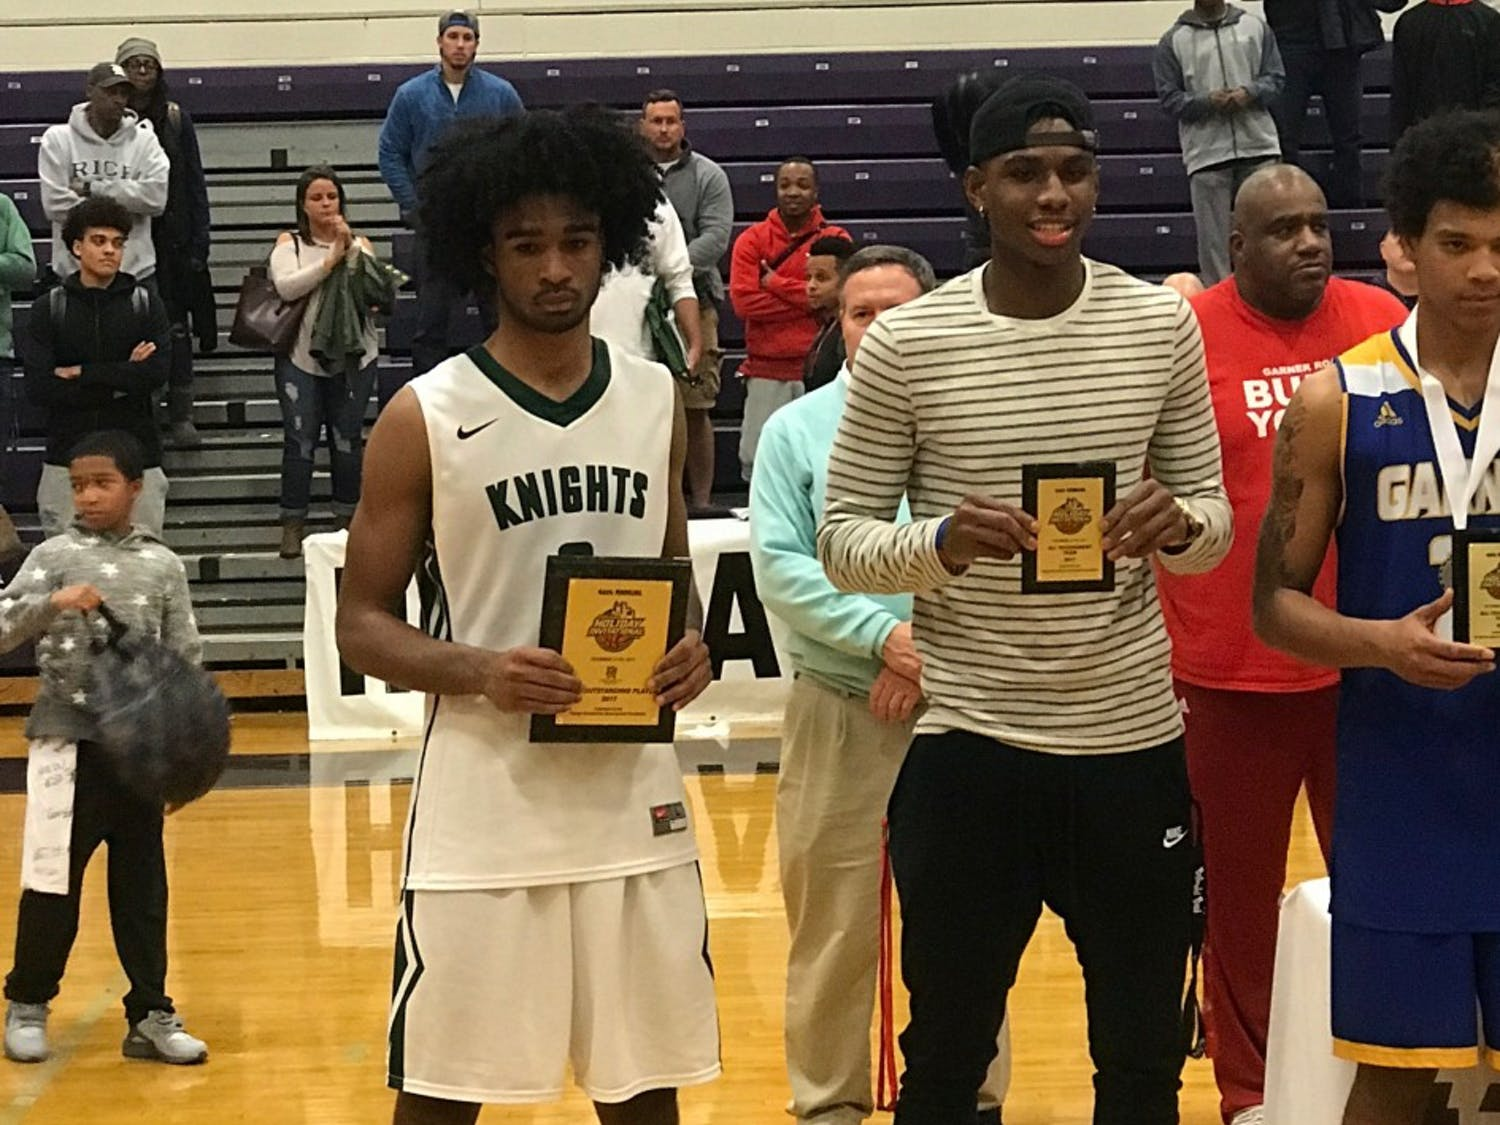 UNC 2018 commit Coby White (left) poses with Greenfield School's runner-up trophy on Dec. 30 at the John Wall Holiday Invitational in Raleigh.